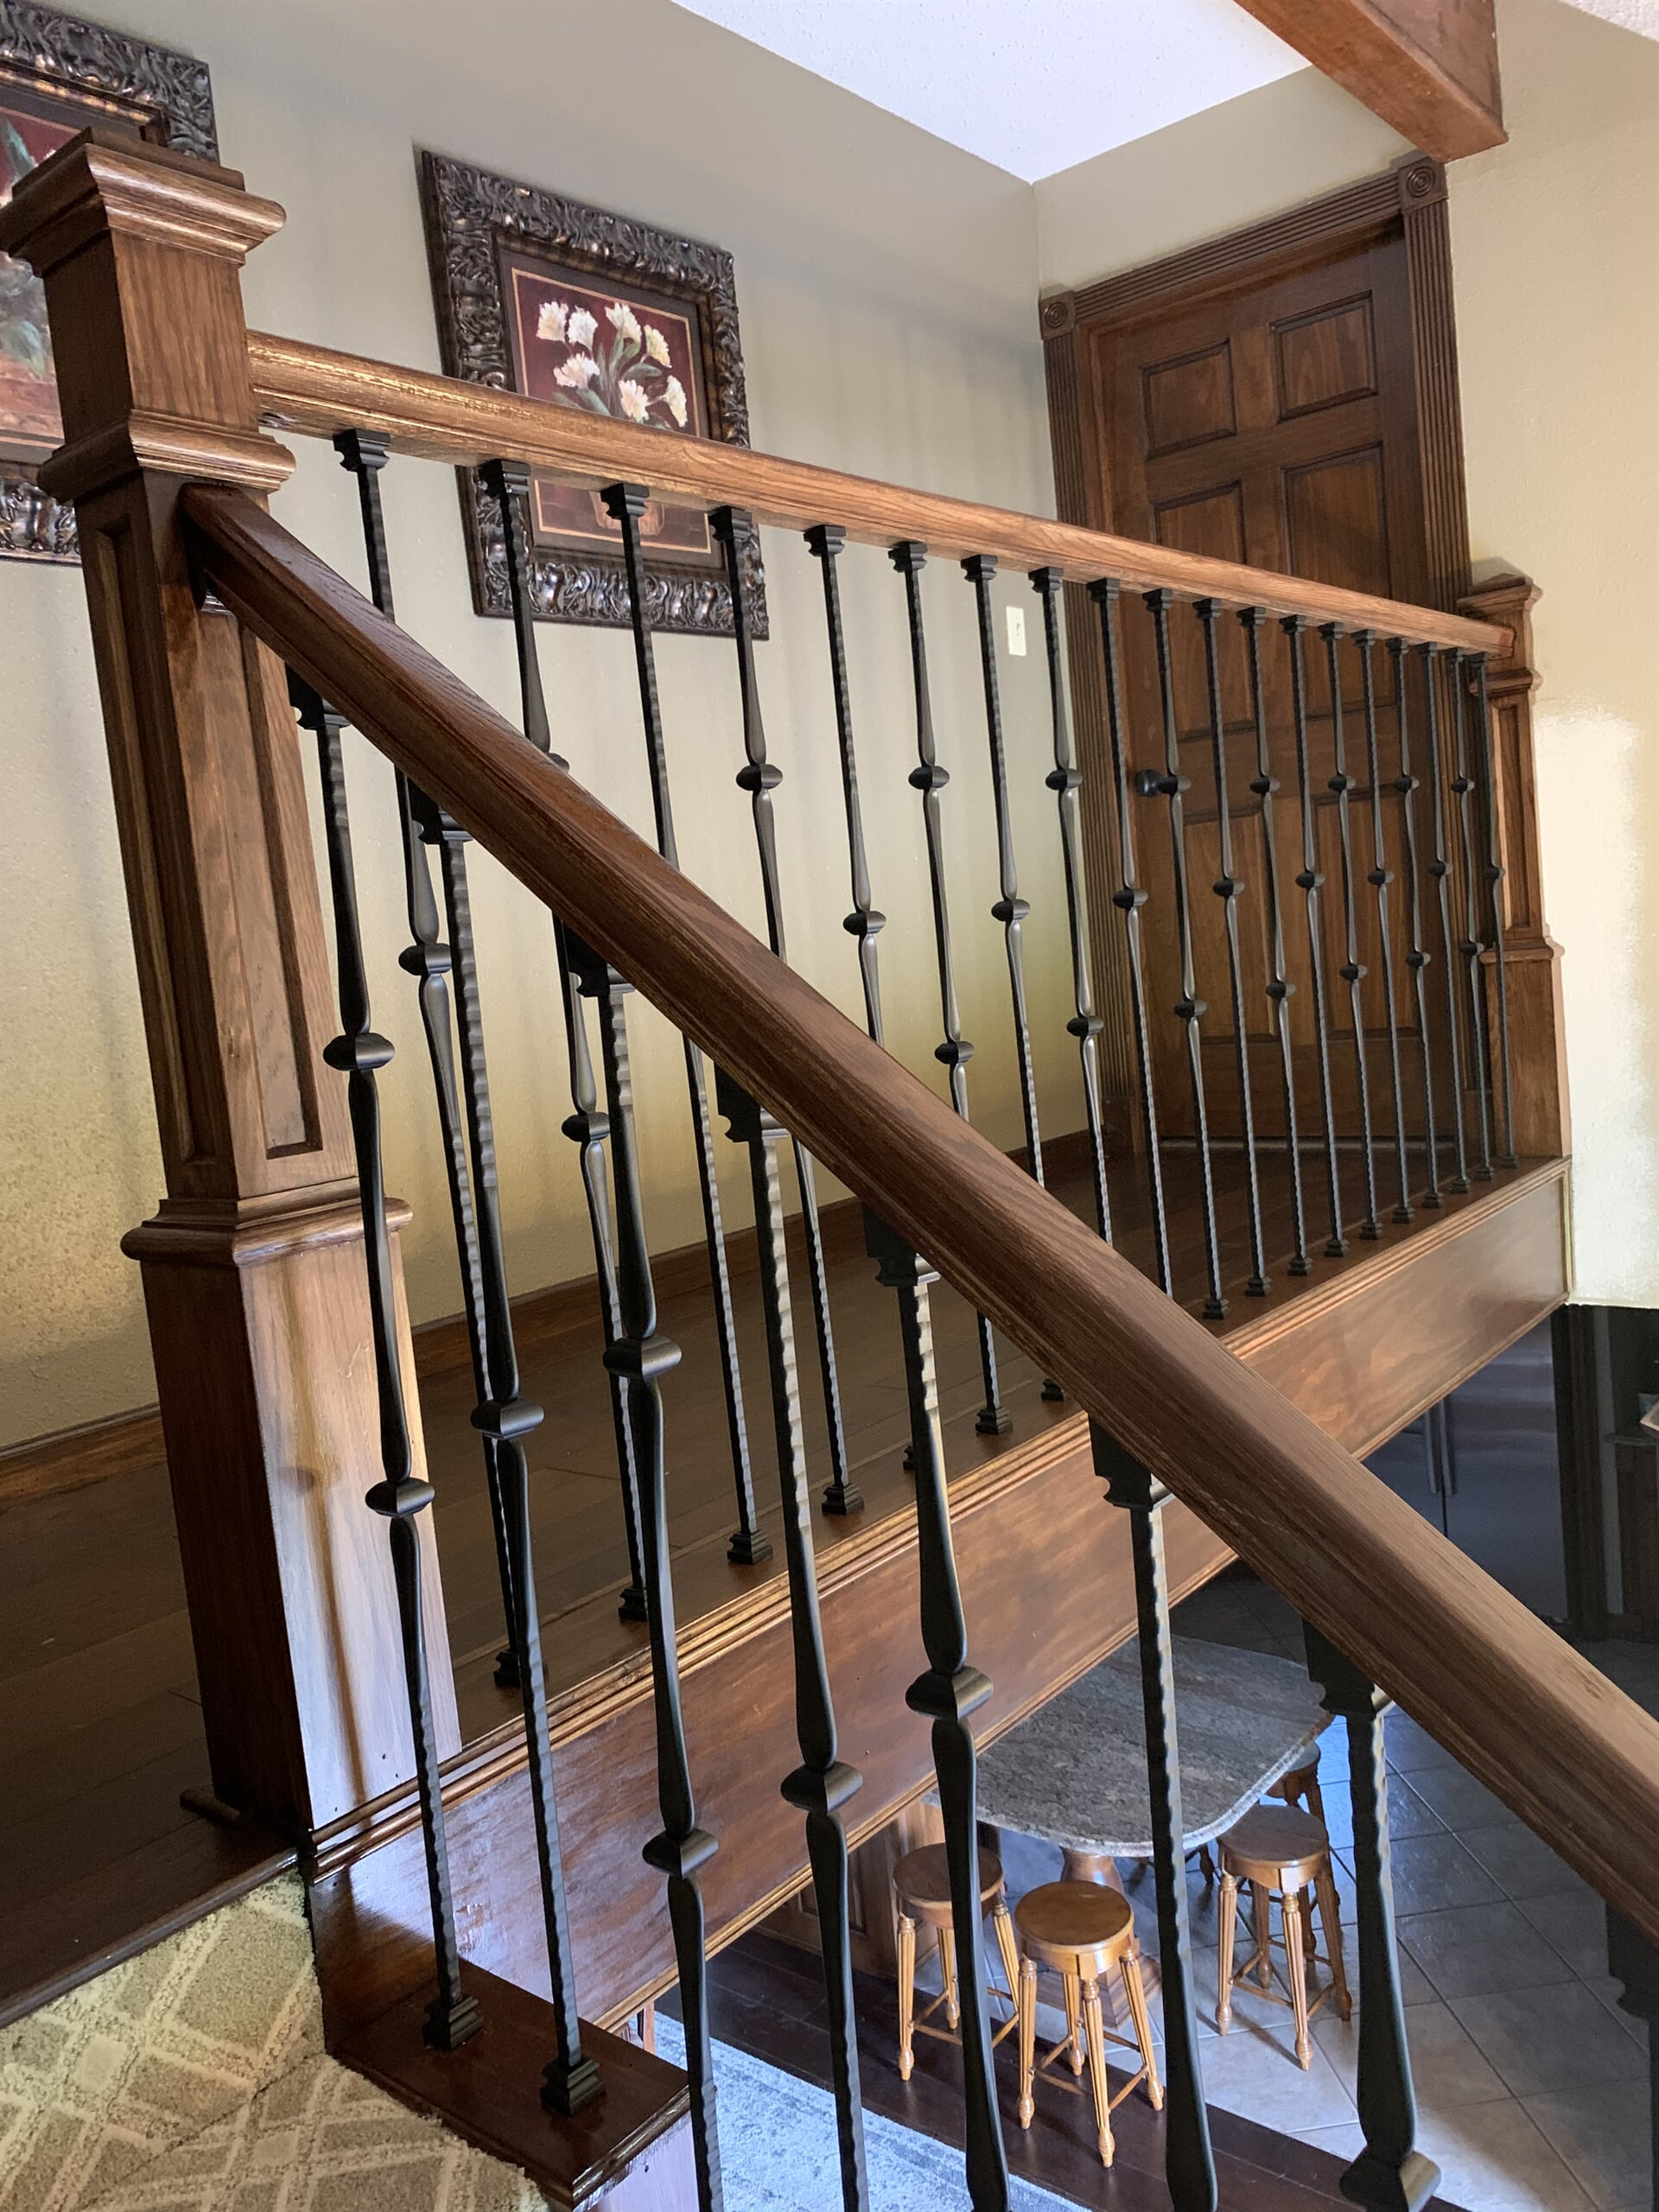 Stair railing installation in Orange, TX from Odile's Fine Flooring & Design